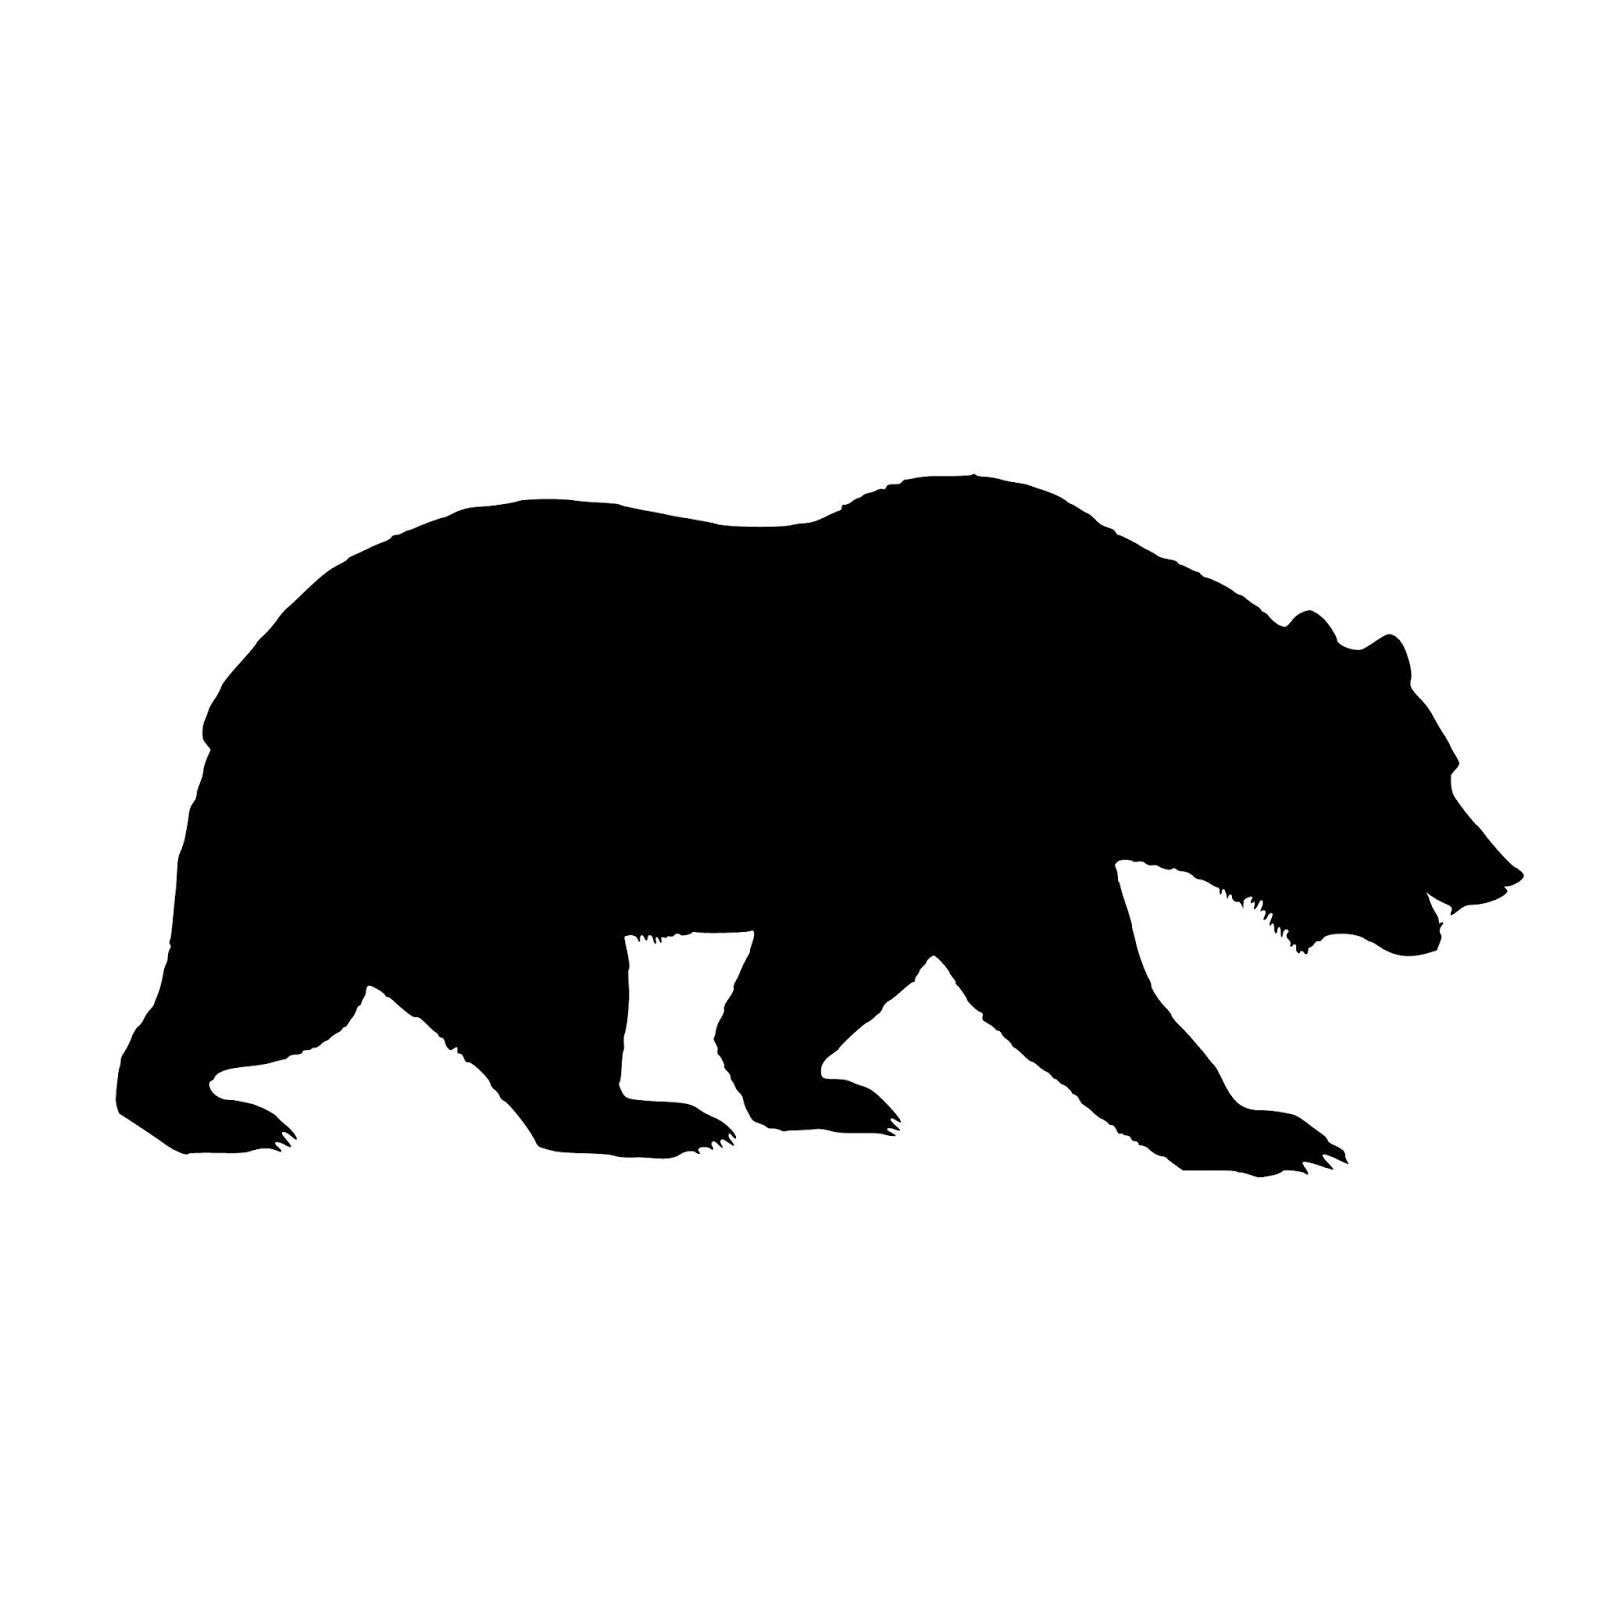 bear silhouette bear silhouette download free images and illustrations bear silhouette